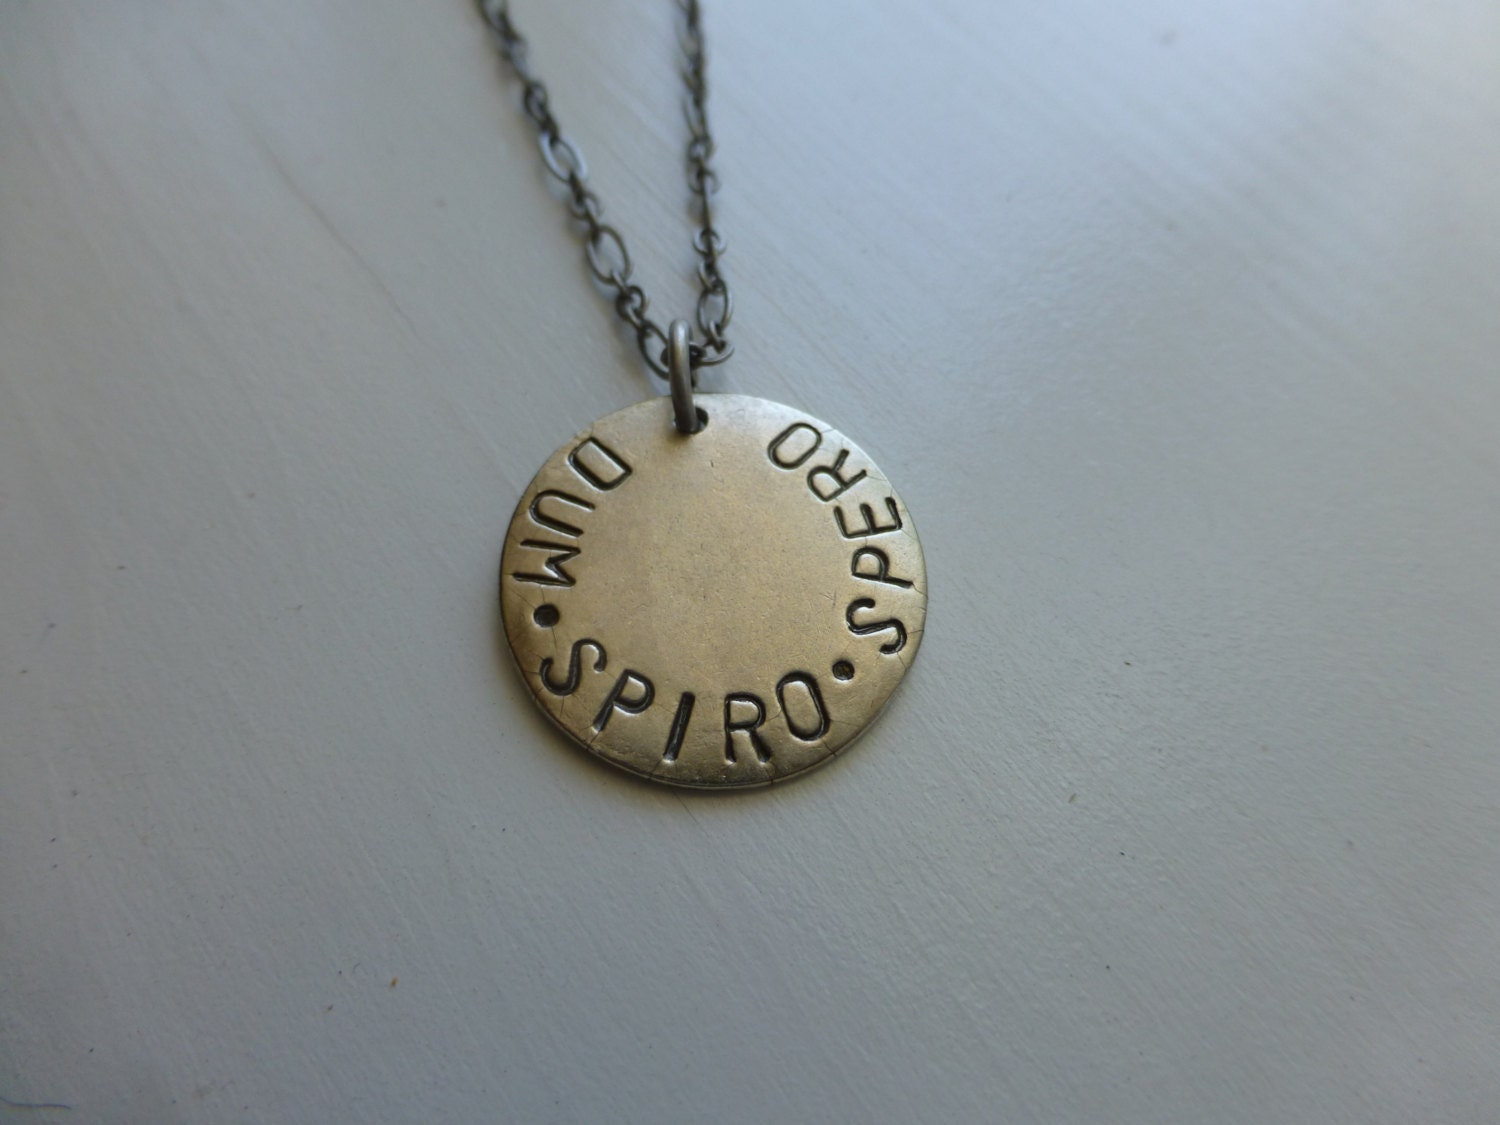 latin word hand stamped necklace gender neutral Dum Spiro Sperp men or  women inspirational saying healing recovery jewelry loss hope love